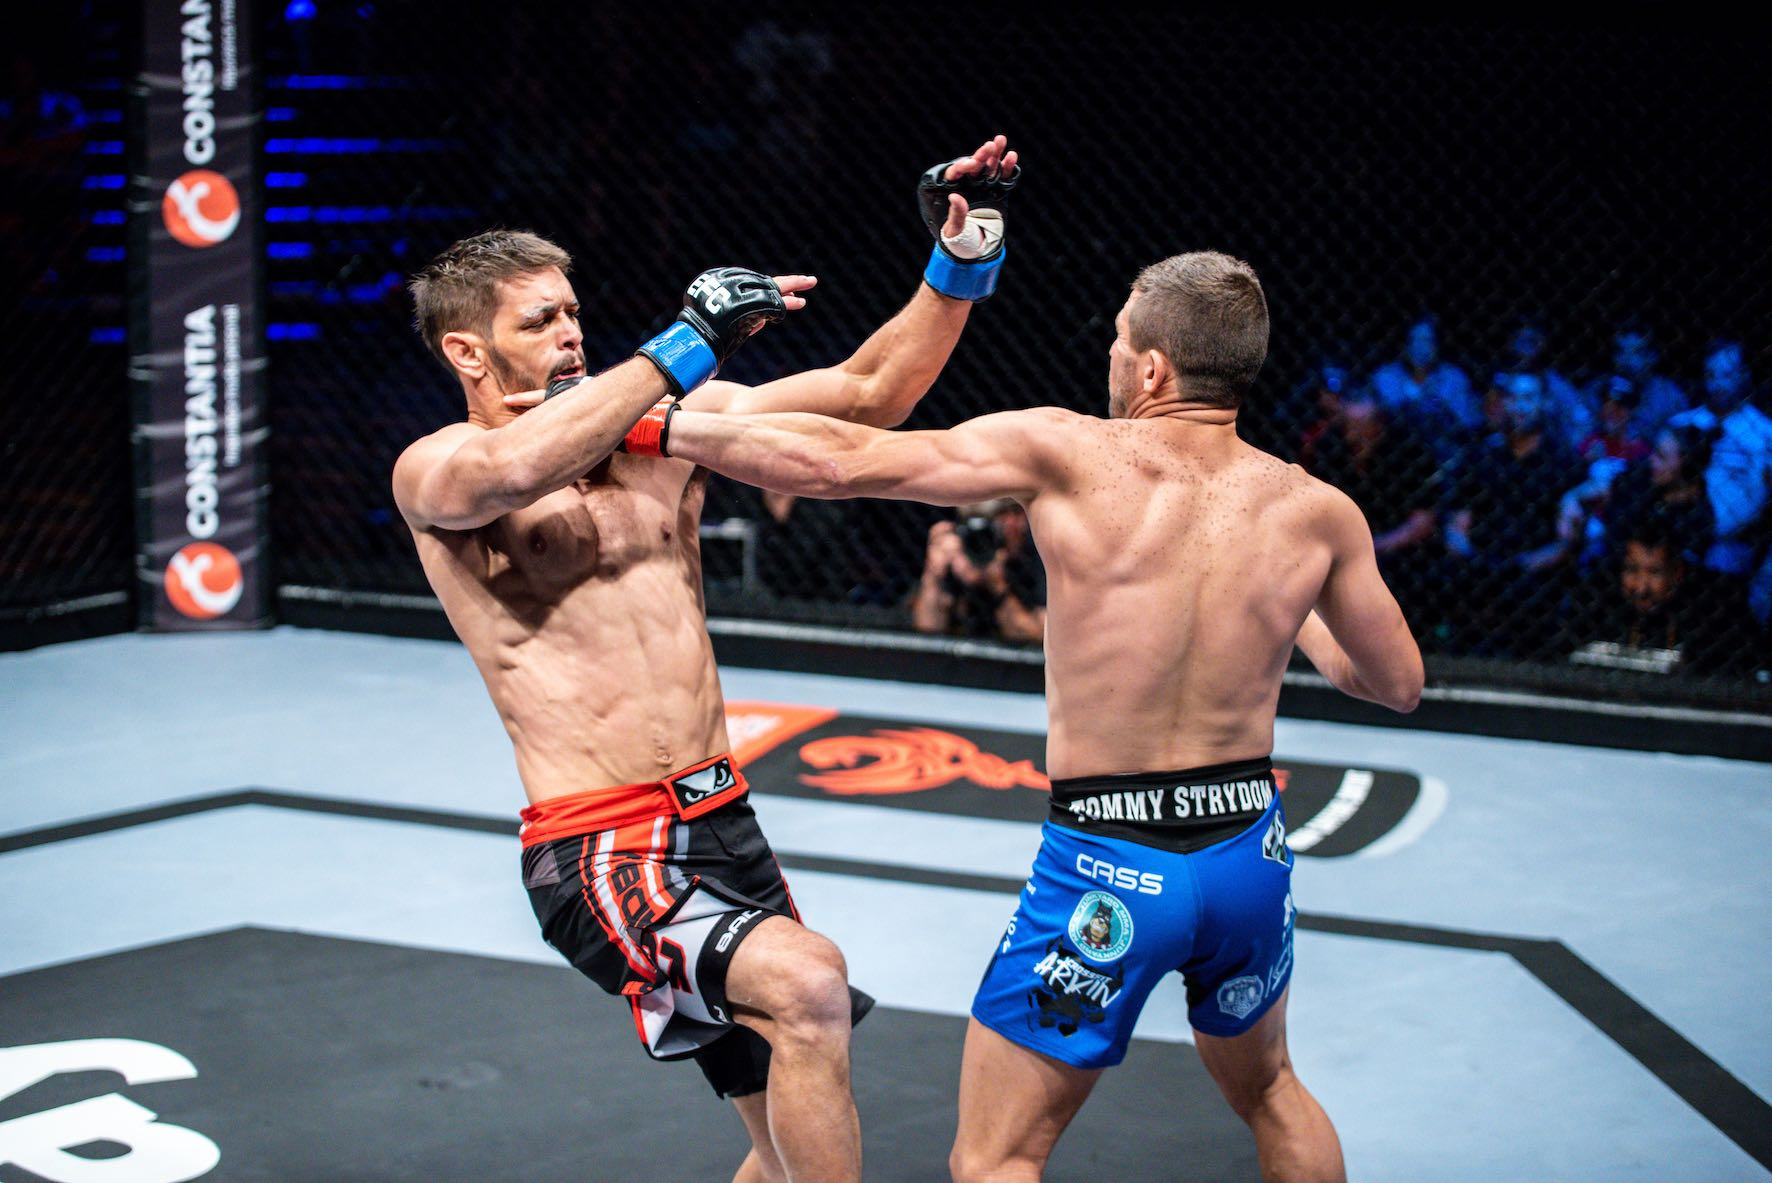 Get the results from all 10 Mixed Martial Arts fights from EFC 82